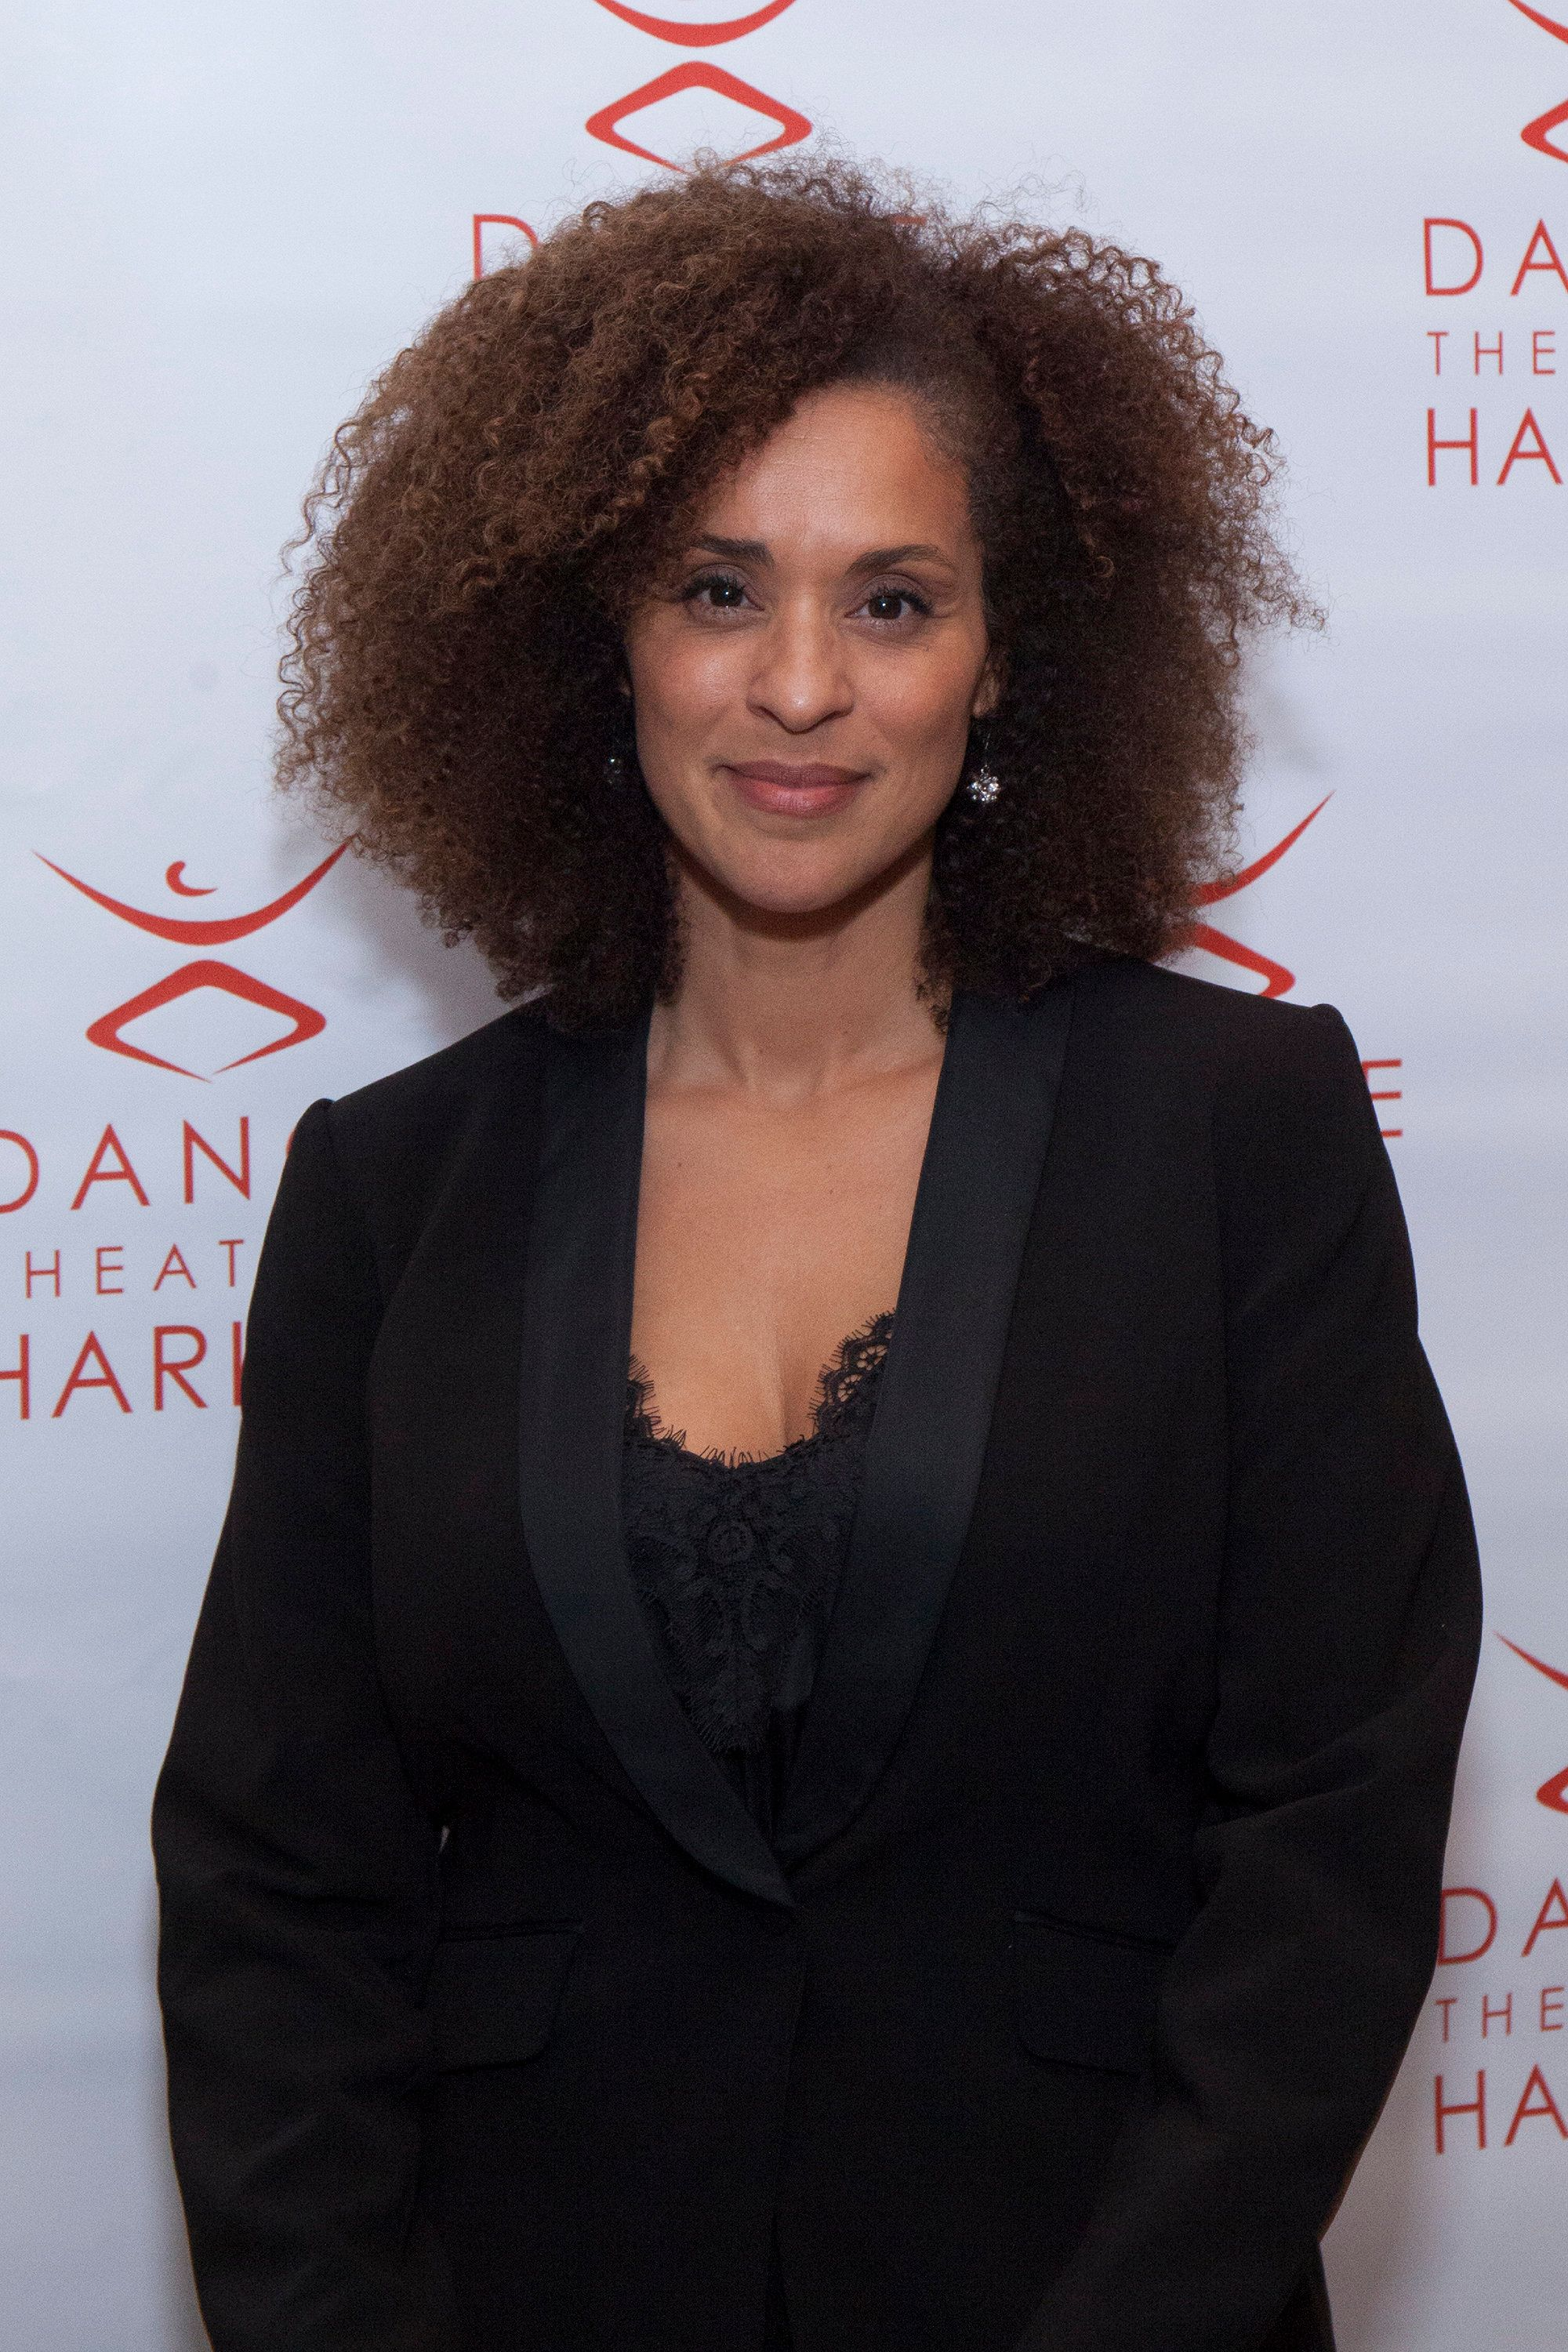 NEW YORK, NY - APRIL 19:  Karyn Parsons attends Dance Theatre of Harlem's 6th Annual Vision Gala at New York Park Hyatt on April 19, 2017 in New York City.  (Photo by Santiago Felipe/Getty Images)